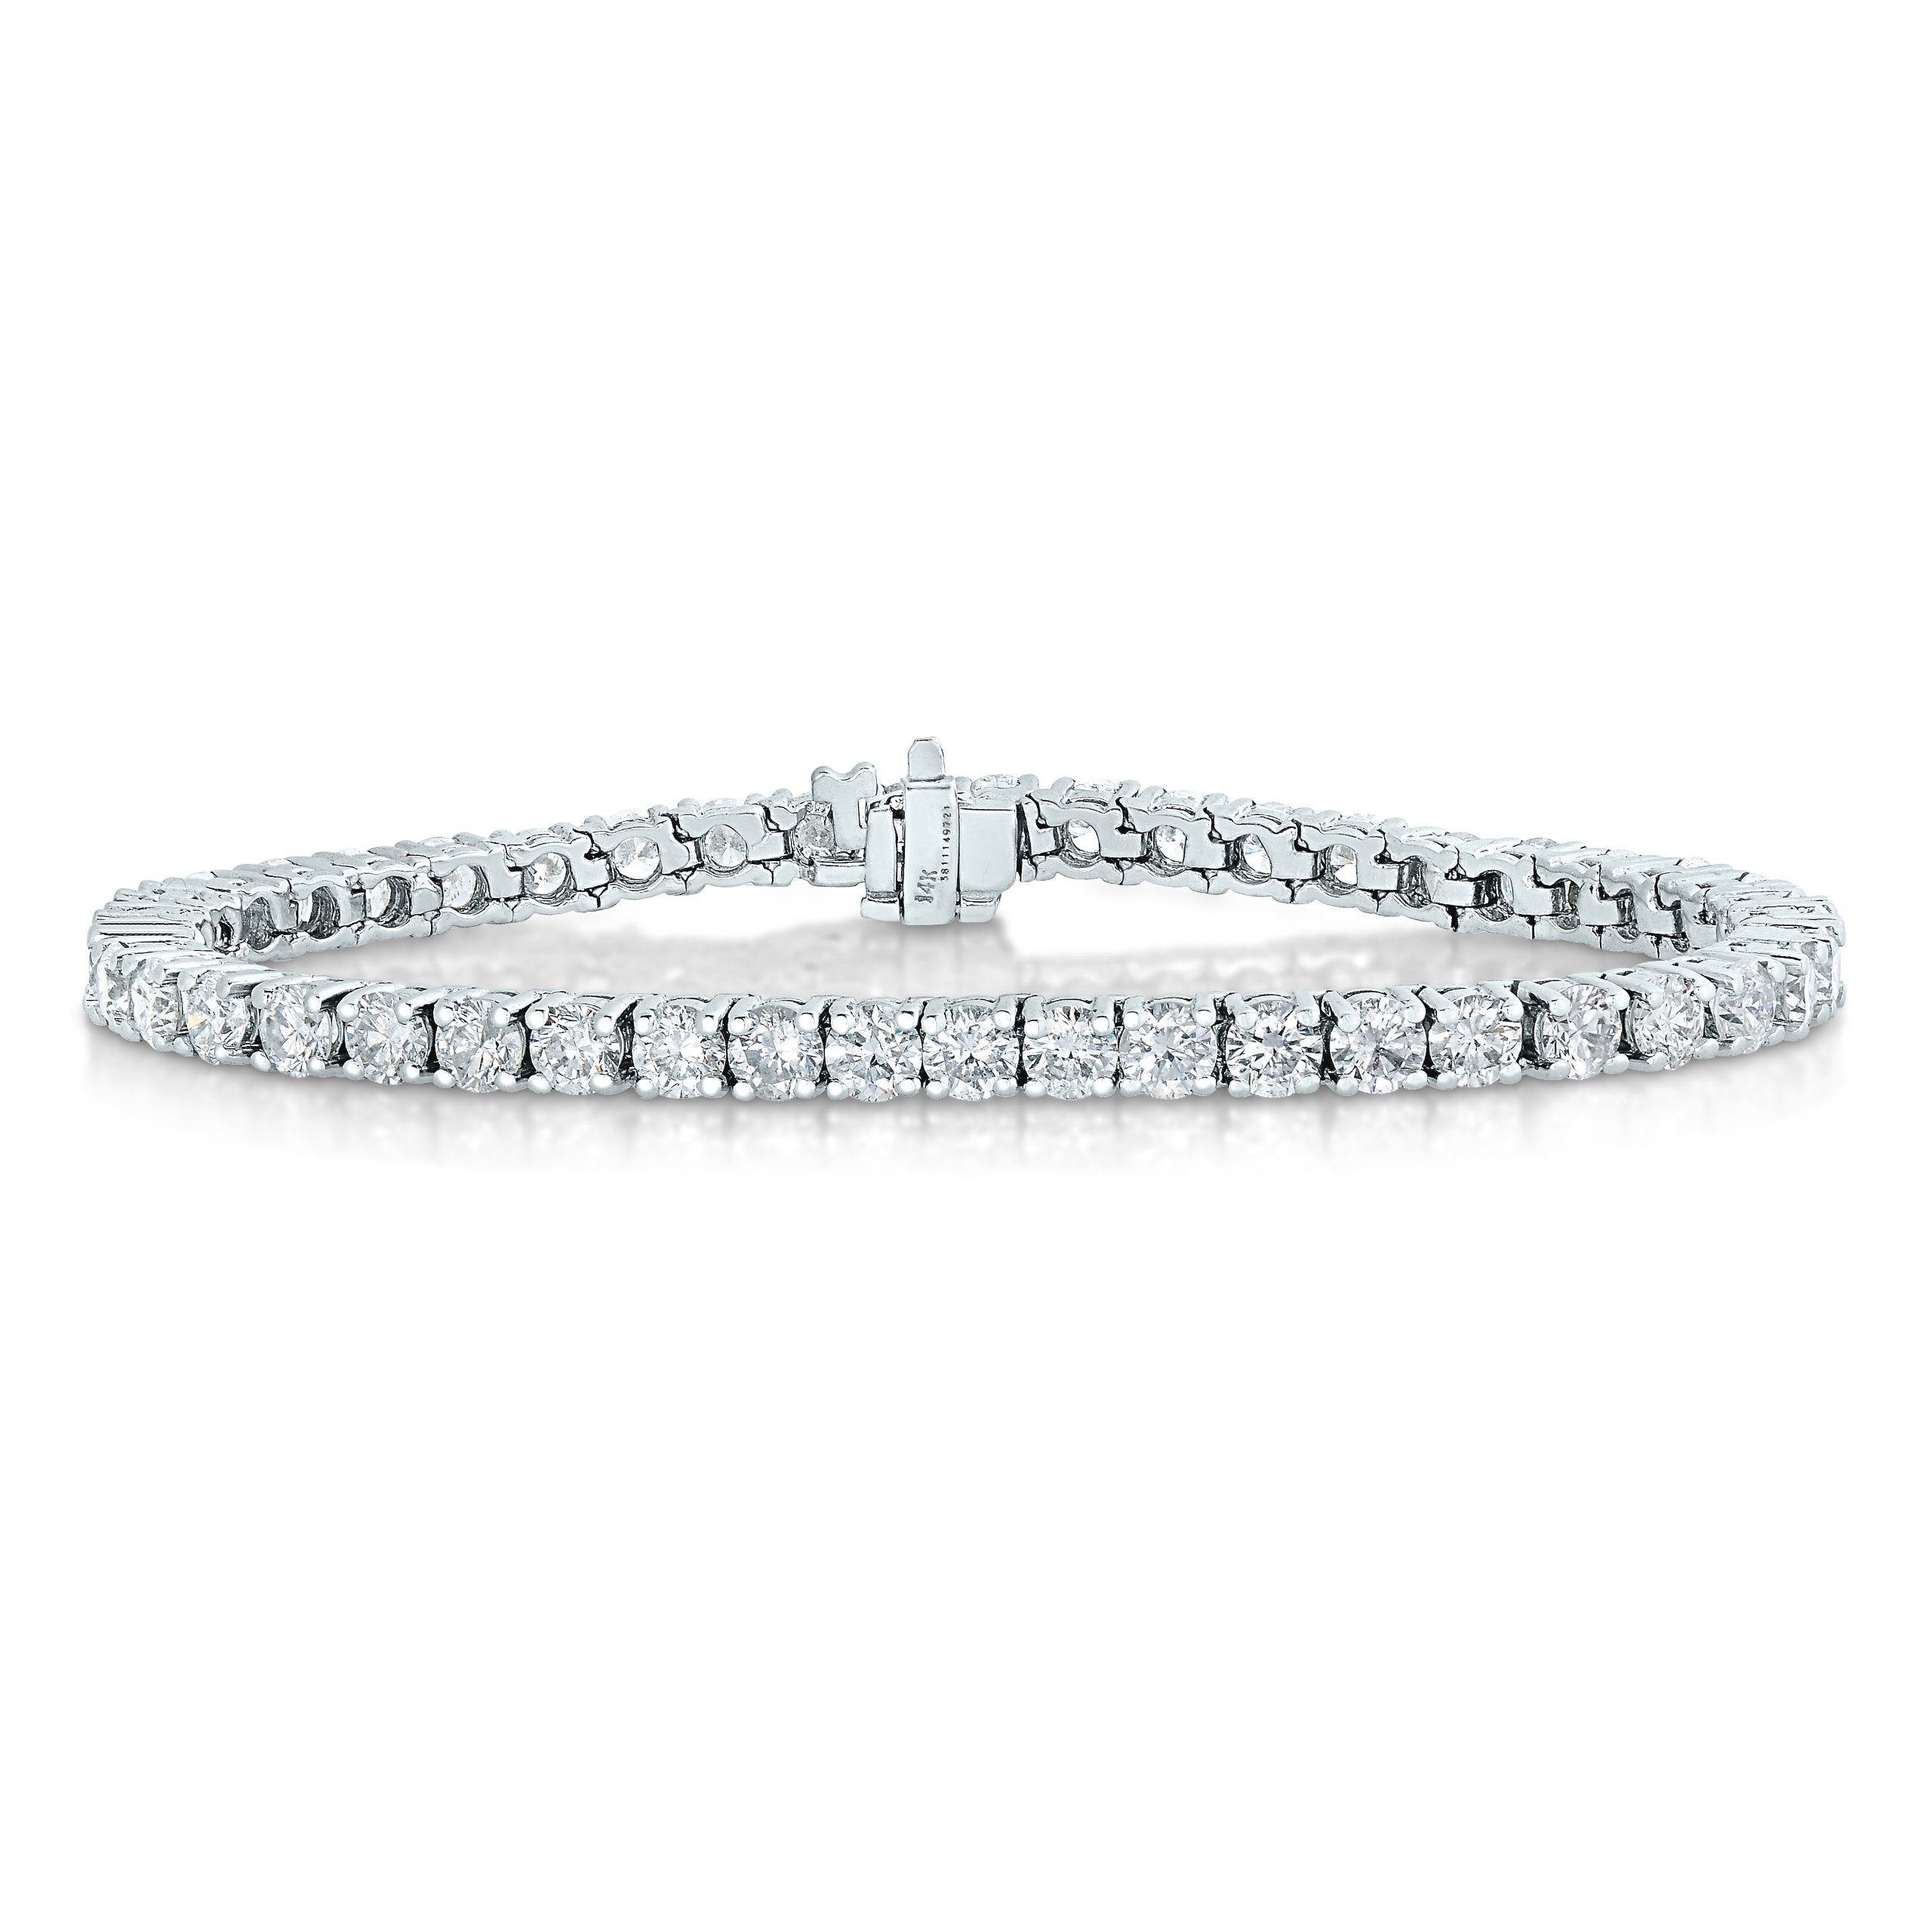 2 CT SI2-I1 AGS Certified Diamond Bracelet 14K White Gold